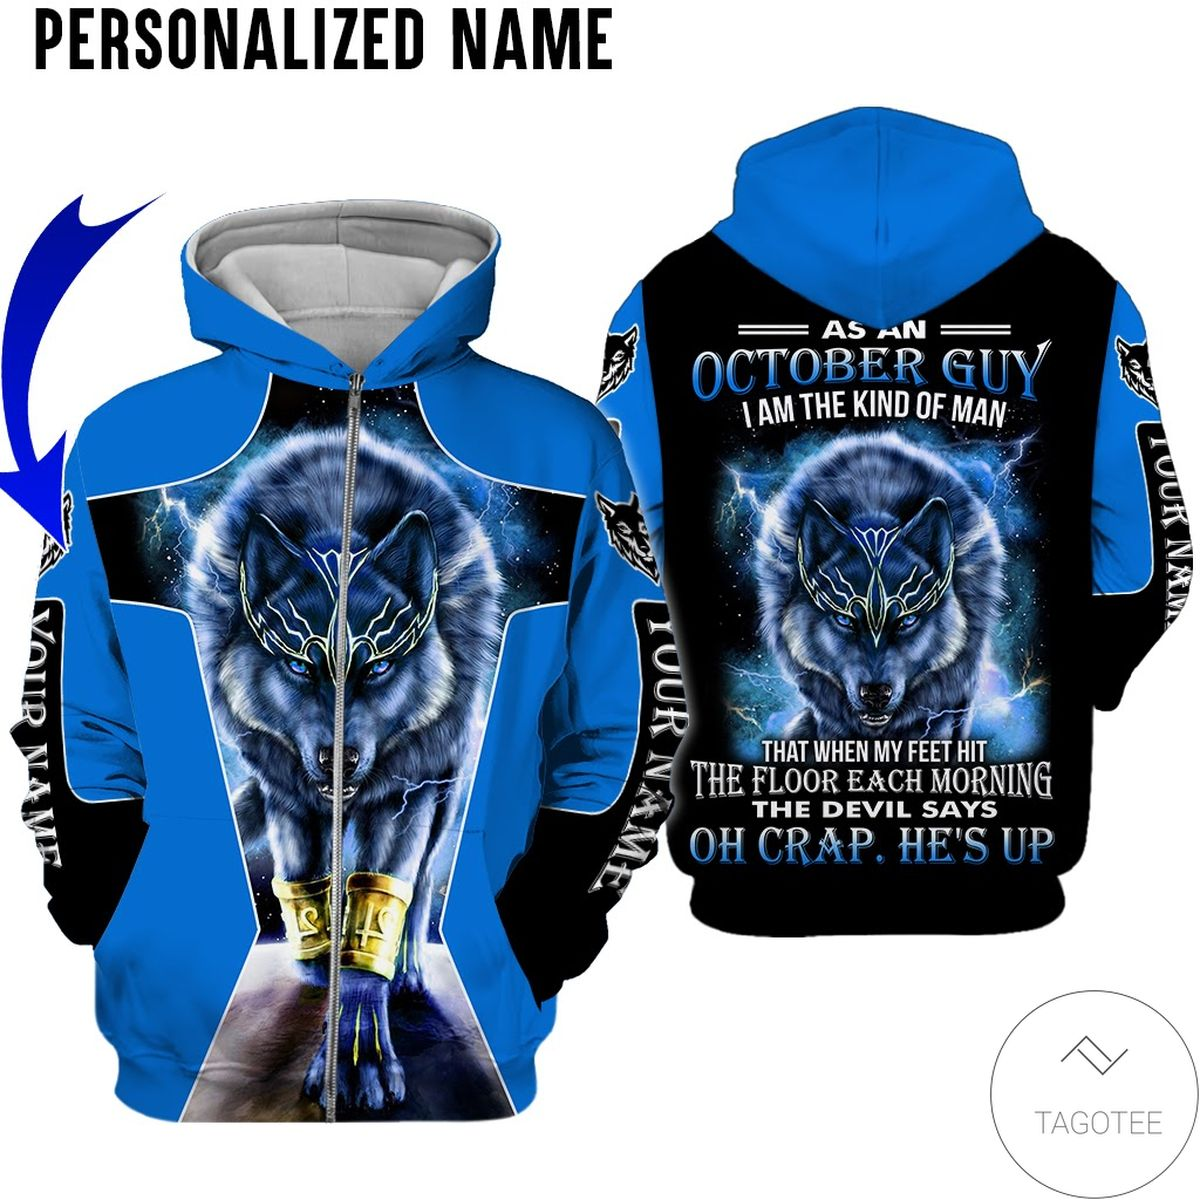 Buy In US Personalized Name As An October Guy I Am A Kind Of Man Wolf All Over Print Hoodie